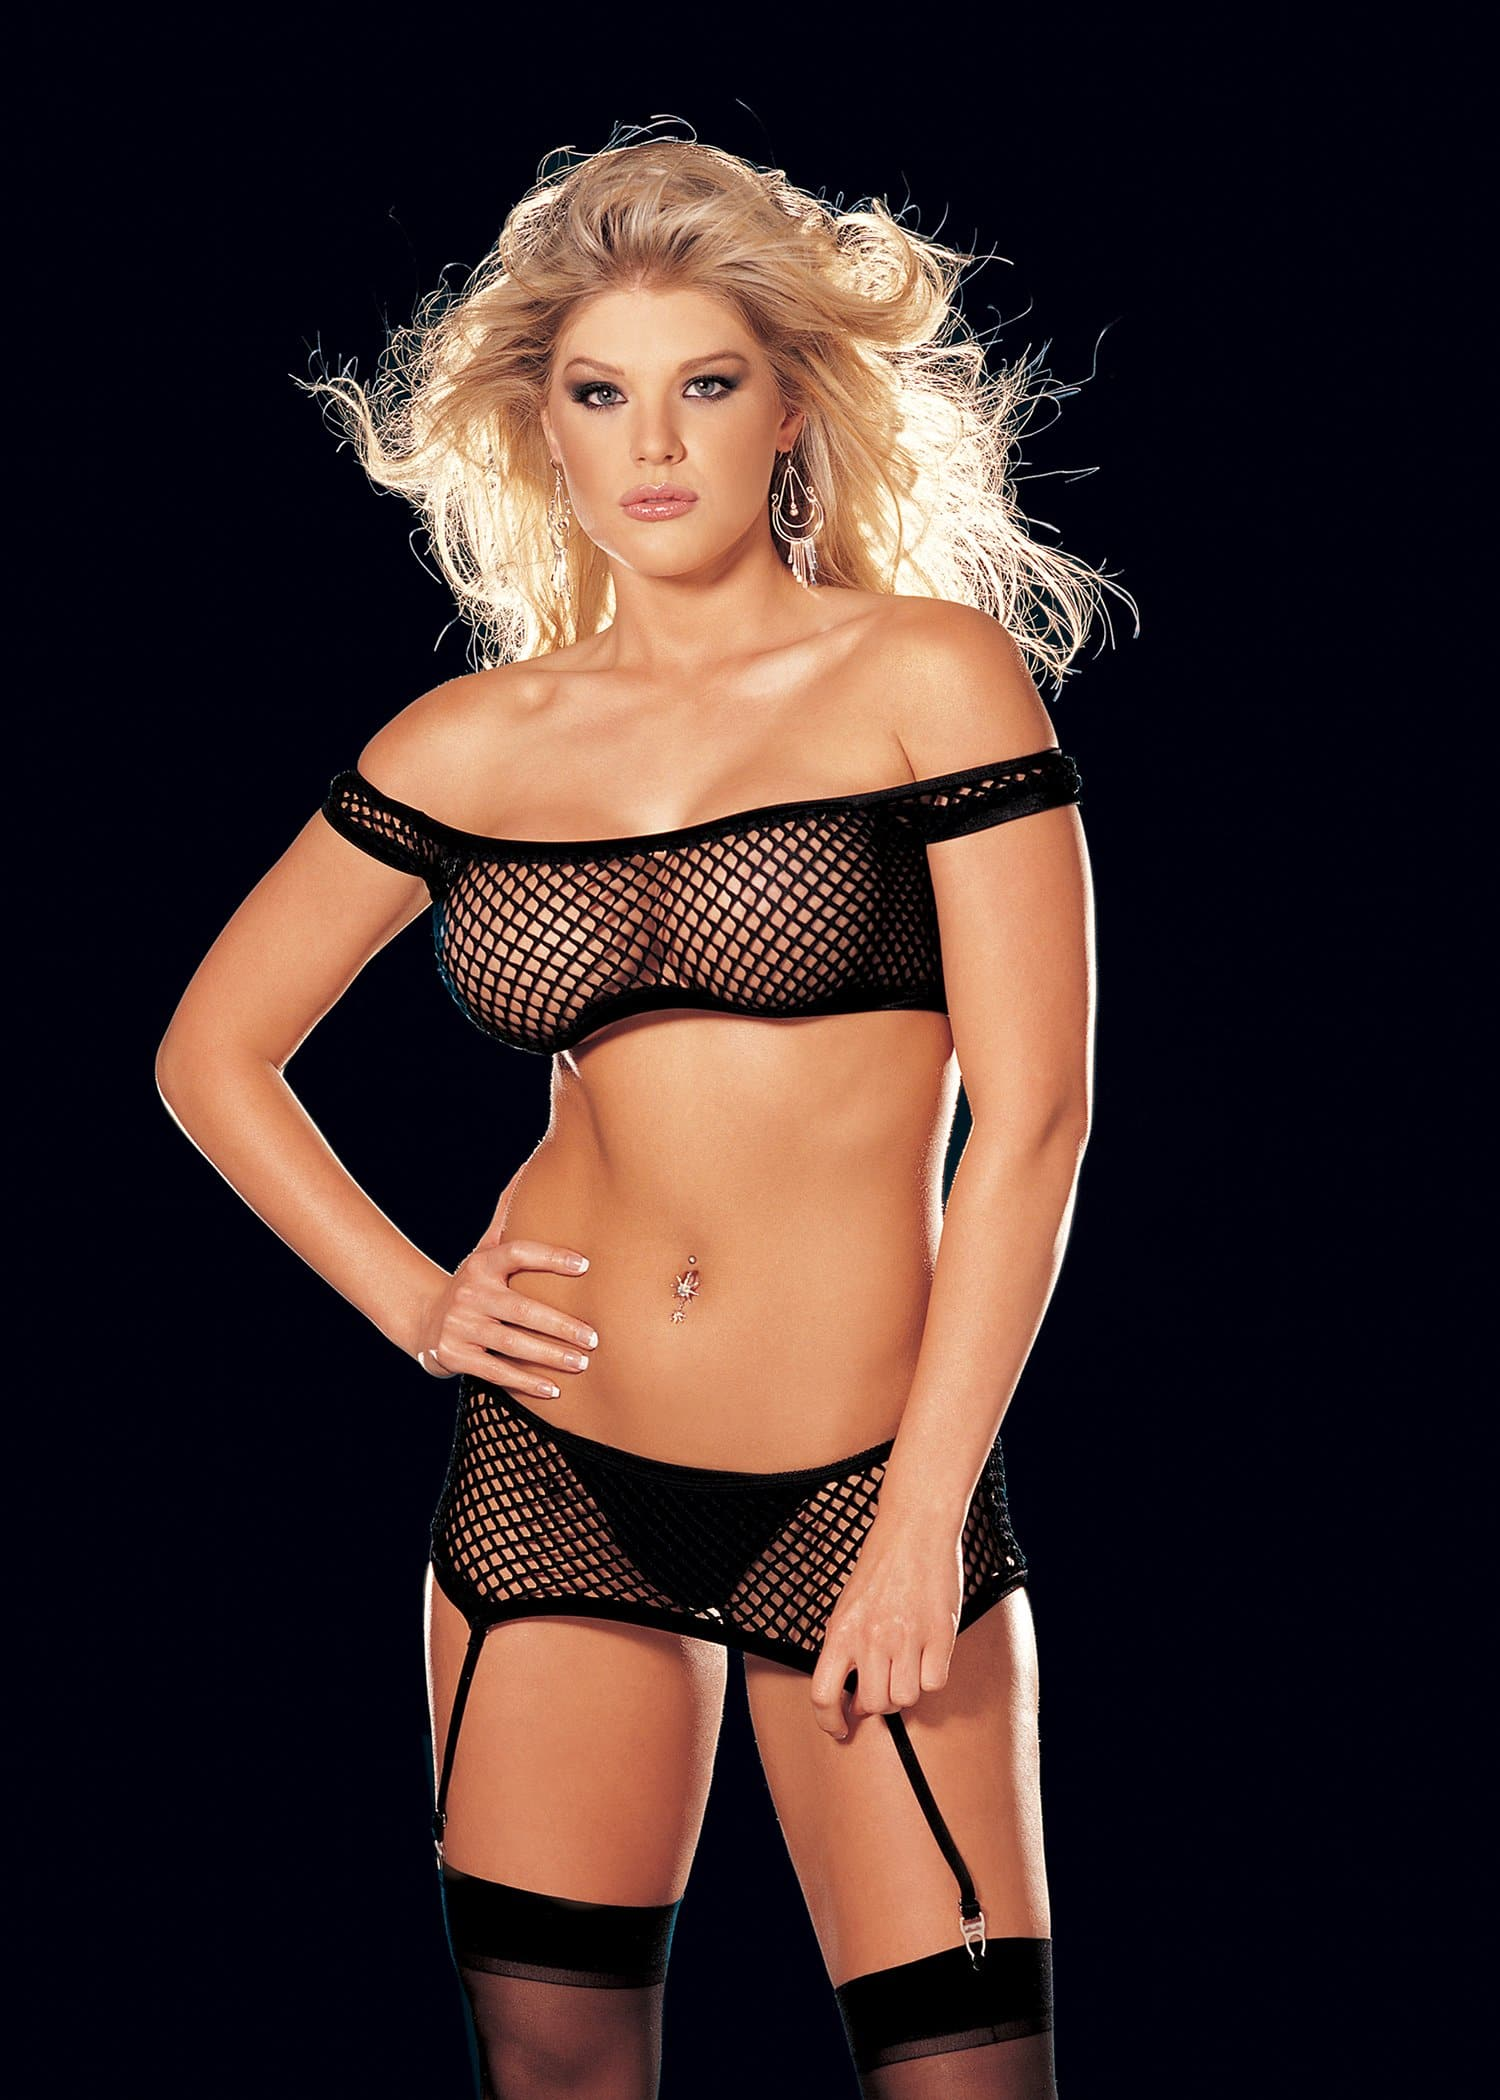 4 Pc. Fishnet Stretch Lace & Suspender Teddy - One Size -